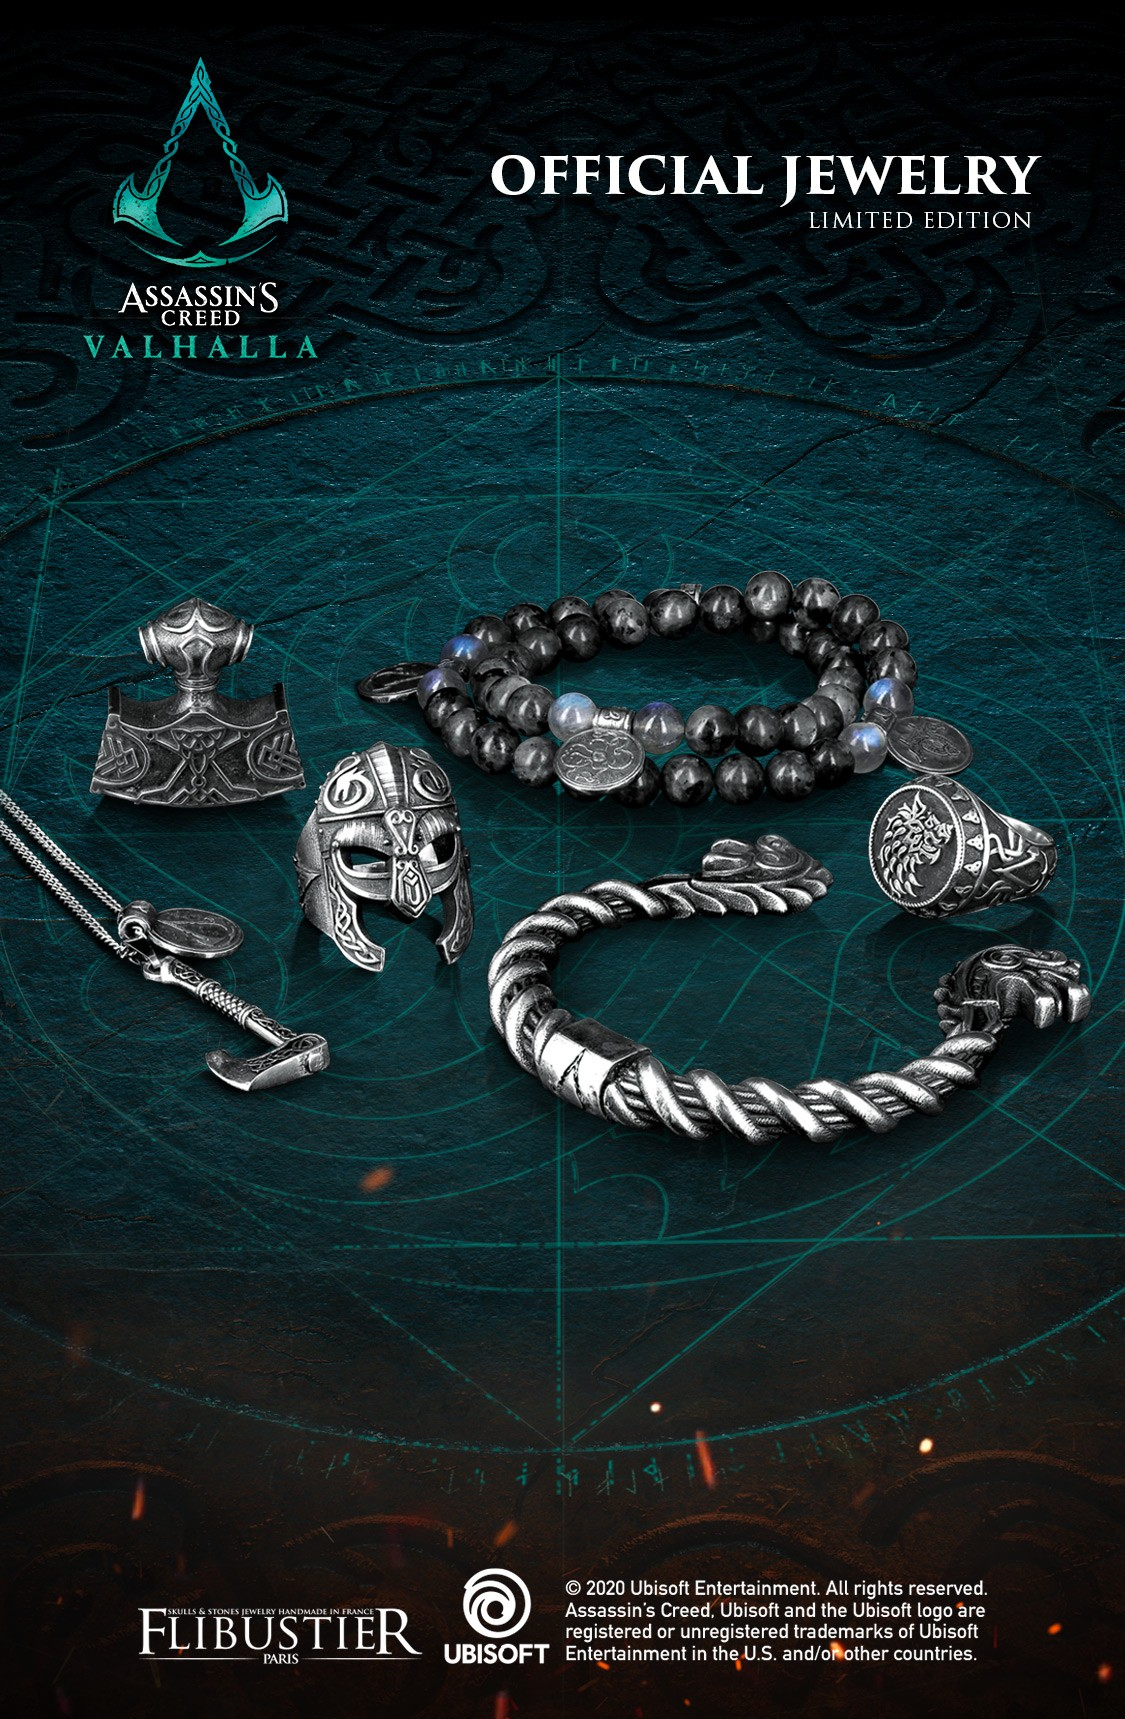 Assassin's Creed official jewels